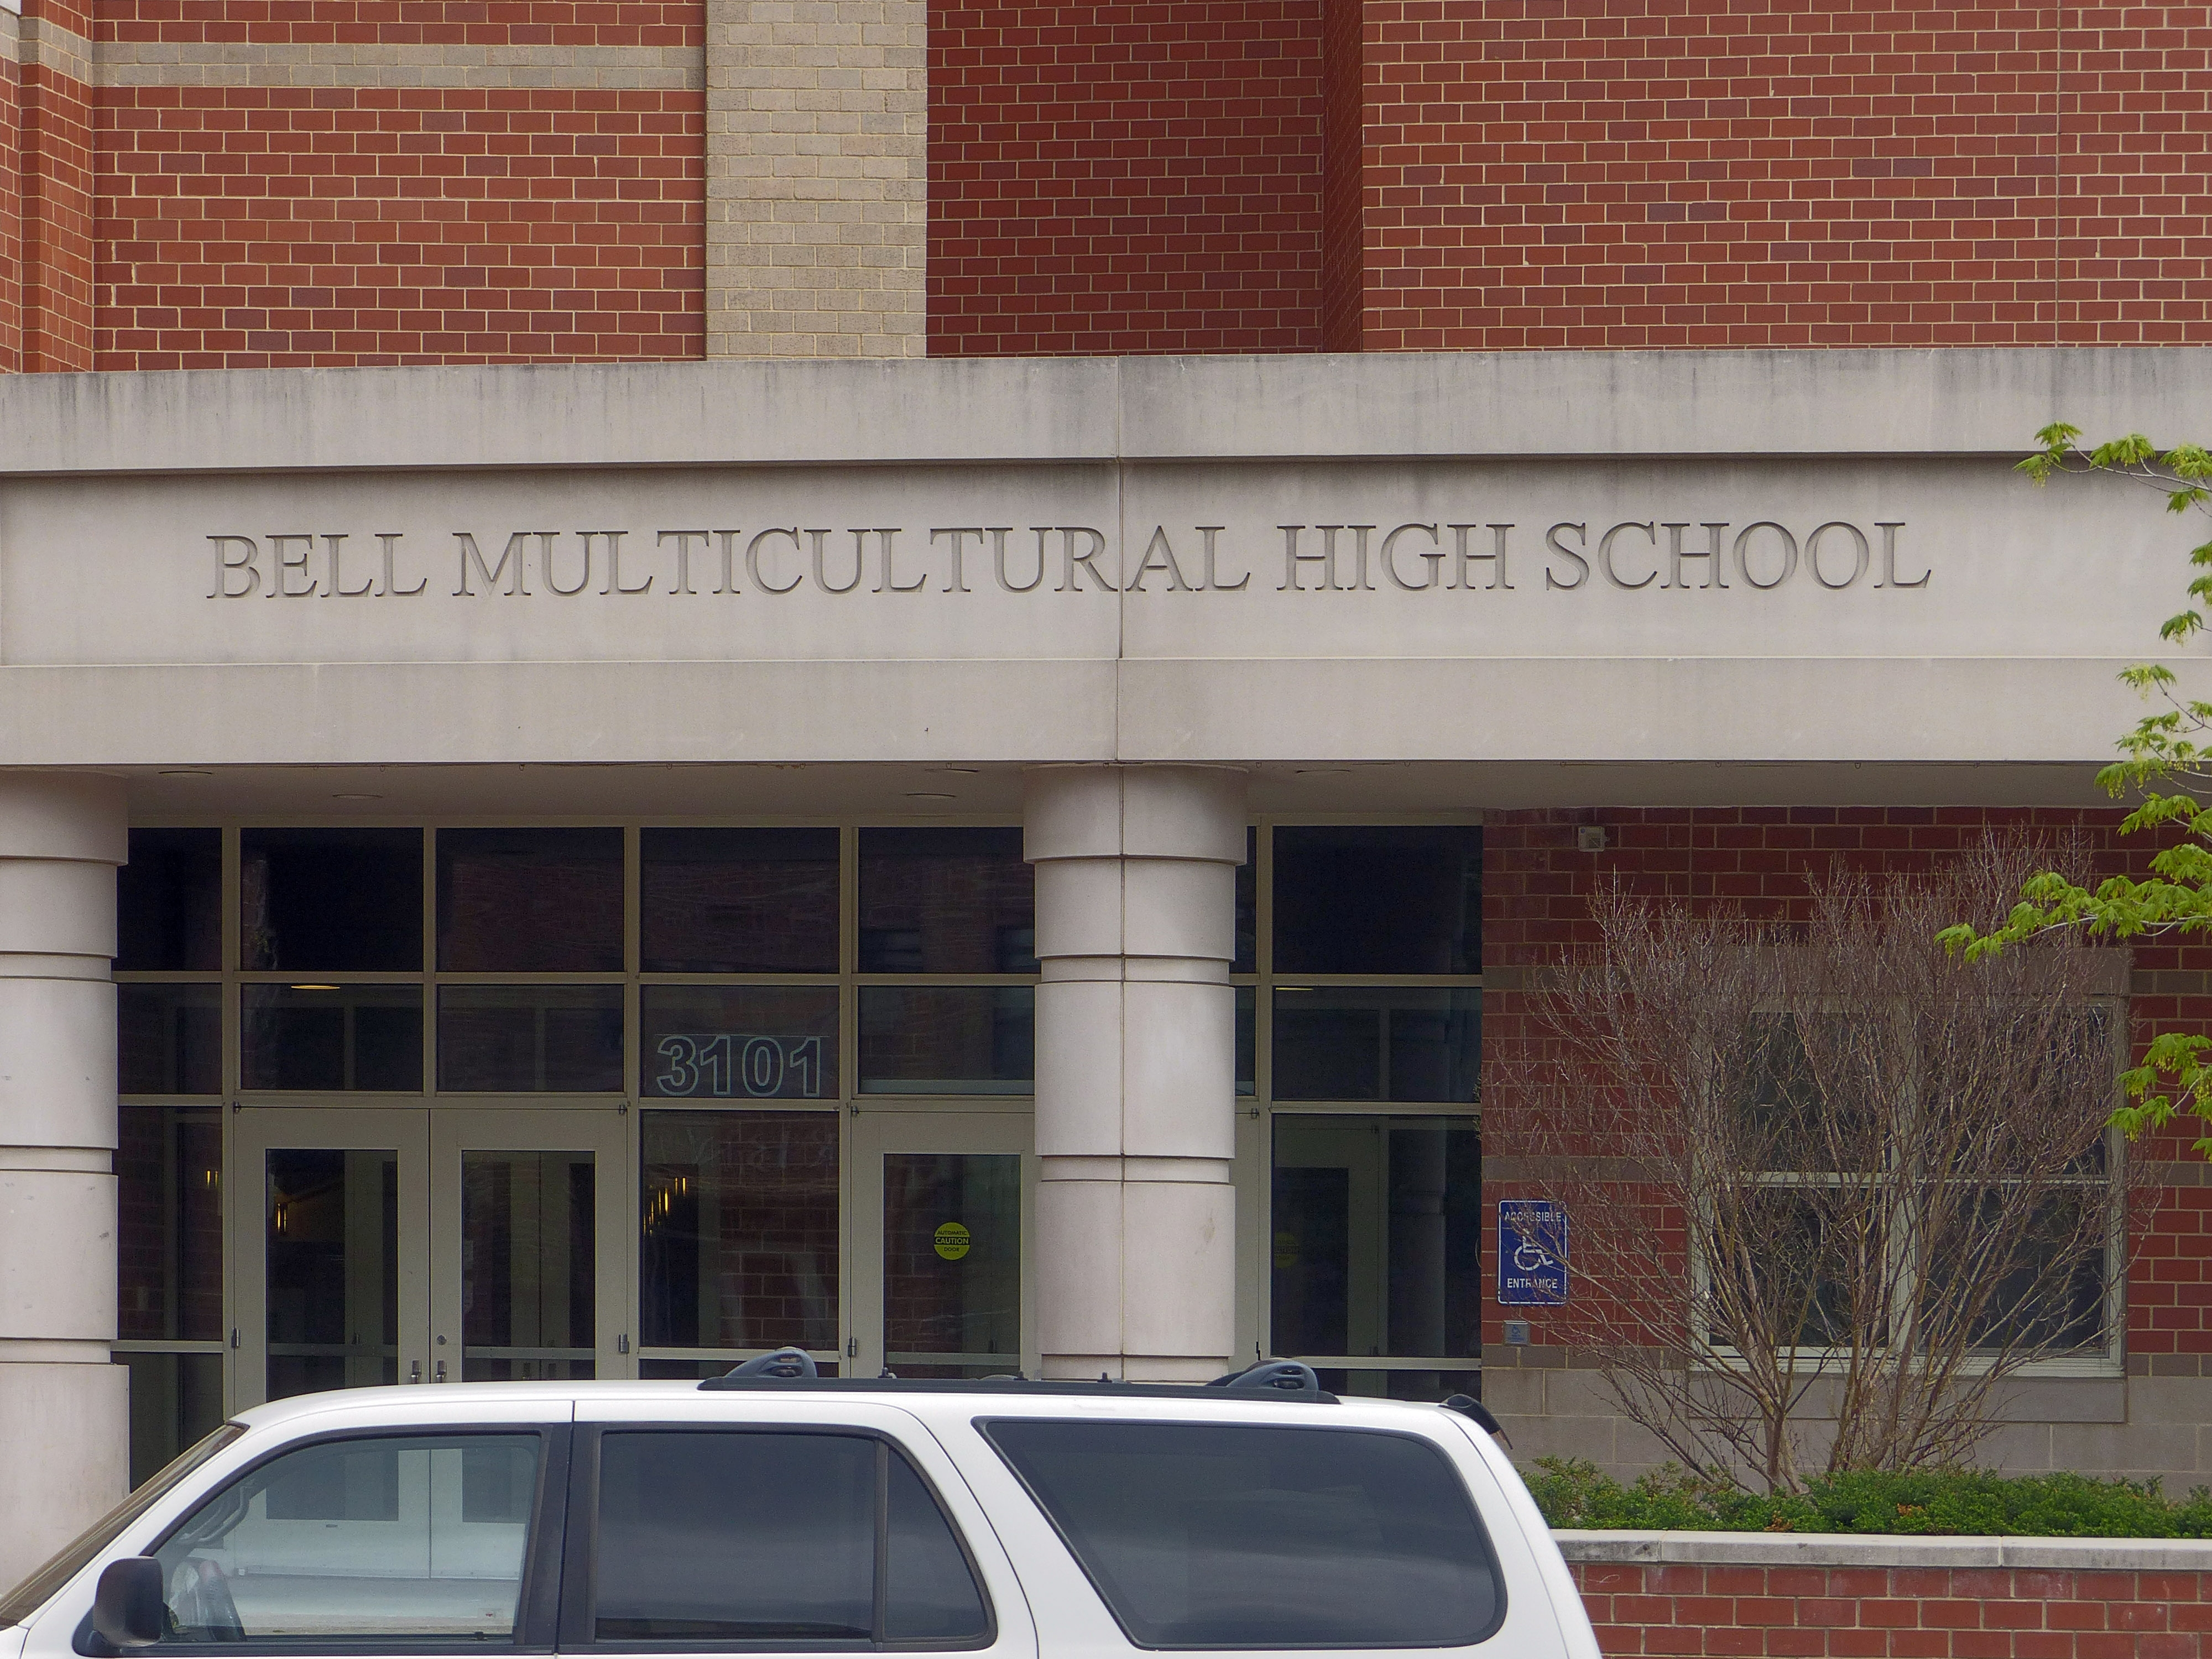 Bell Multicultural High School<br>&#8220;Home of the Griffins and Knights&#8221;